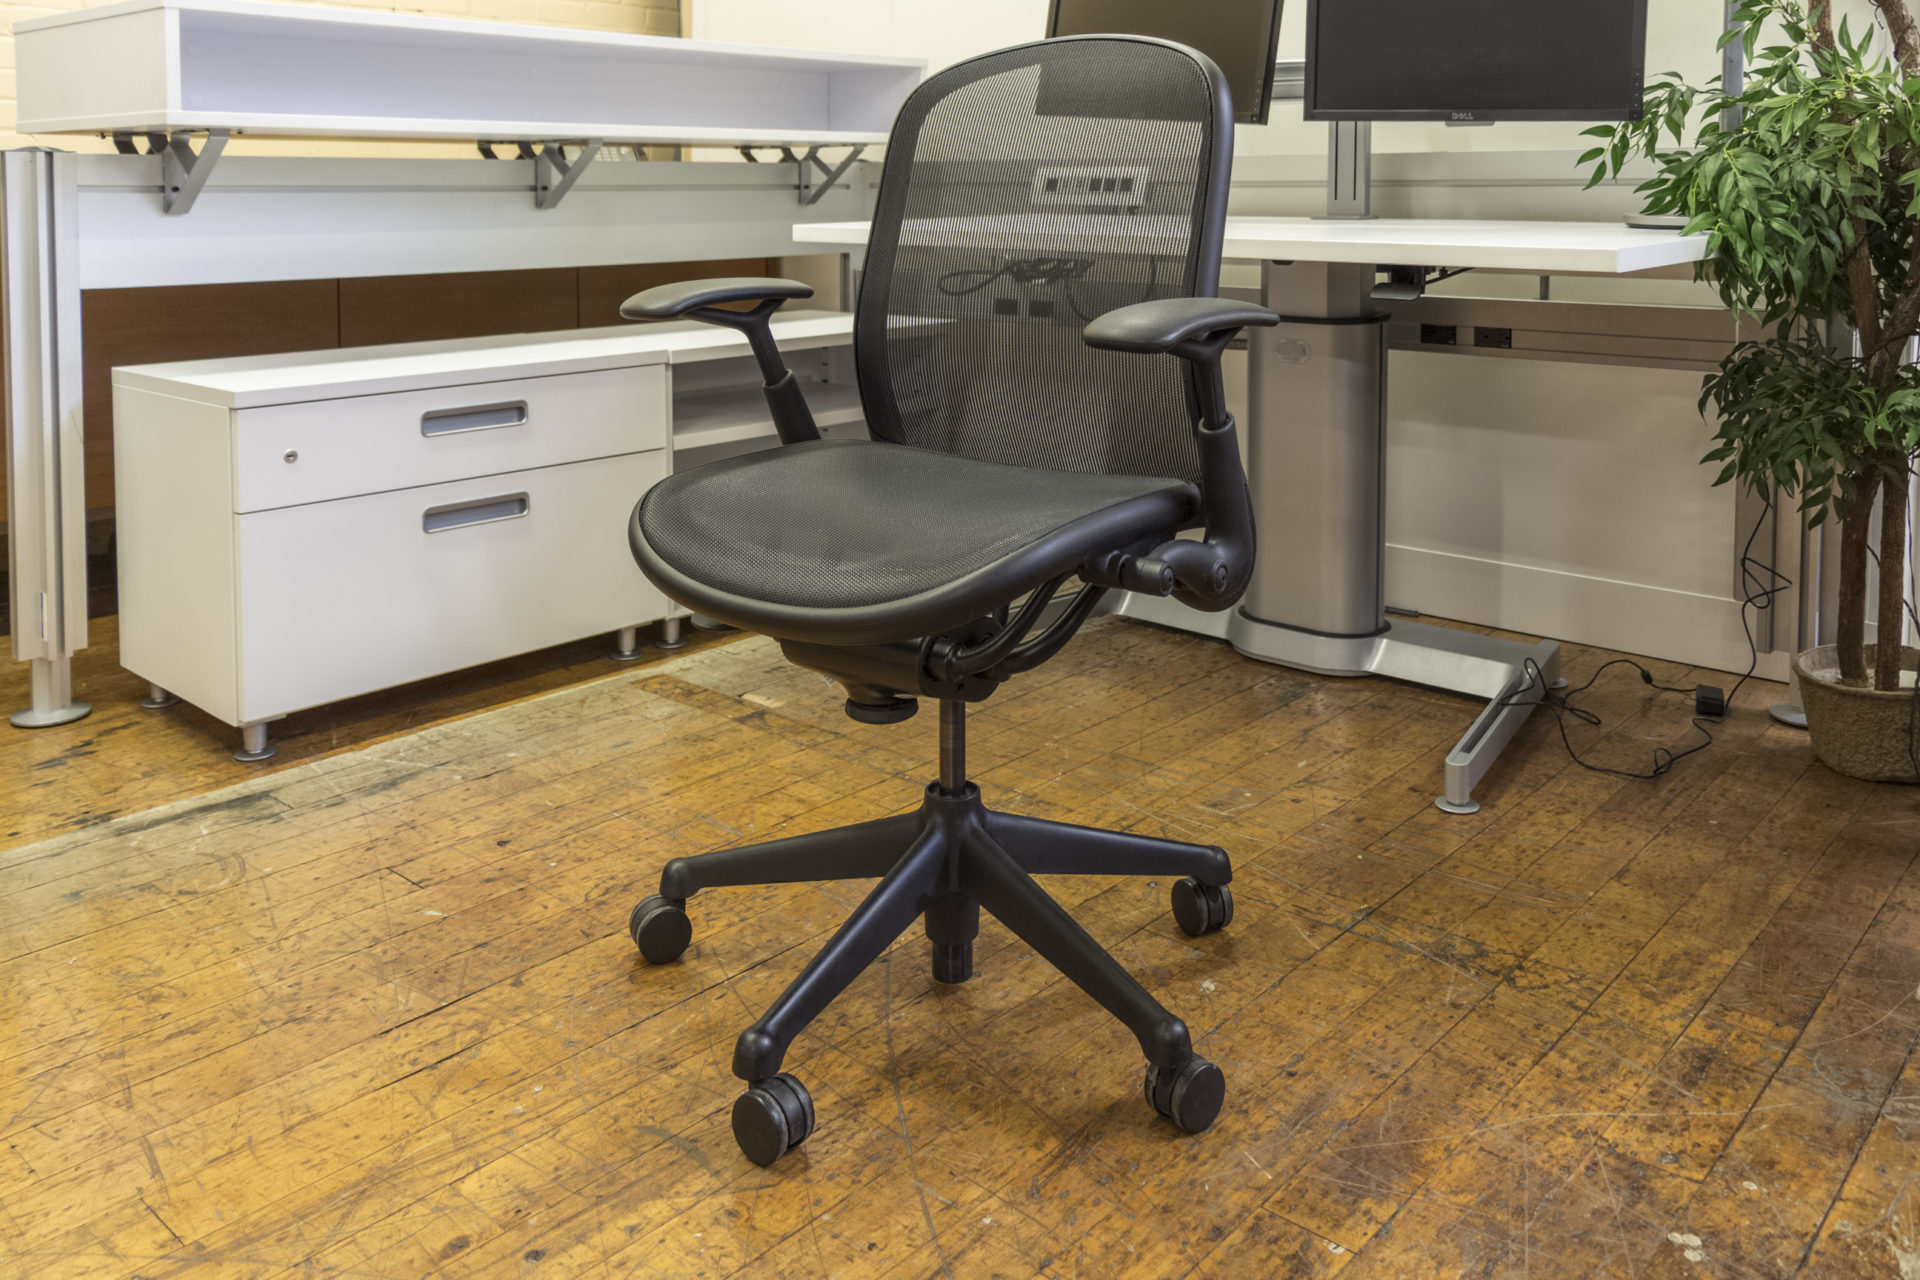 office chair supports 300 lbs gray wicker knoll chadwick mesh task chairs  peartree furniture